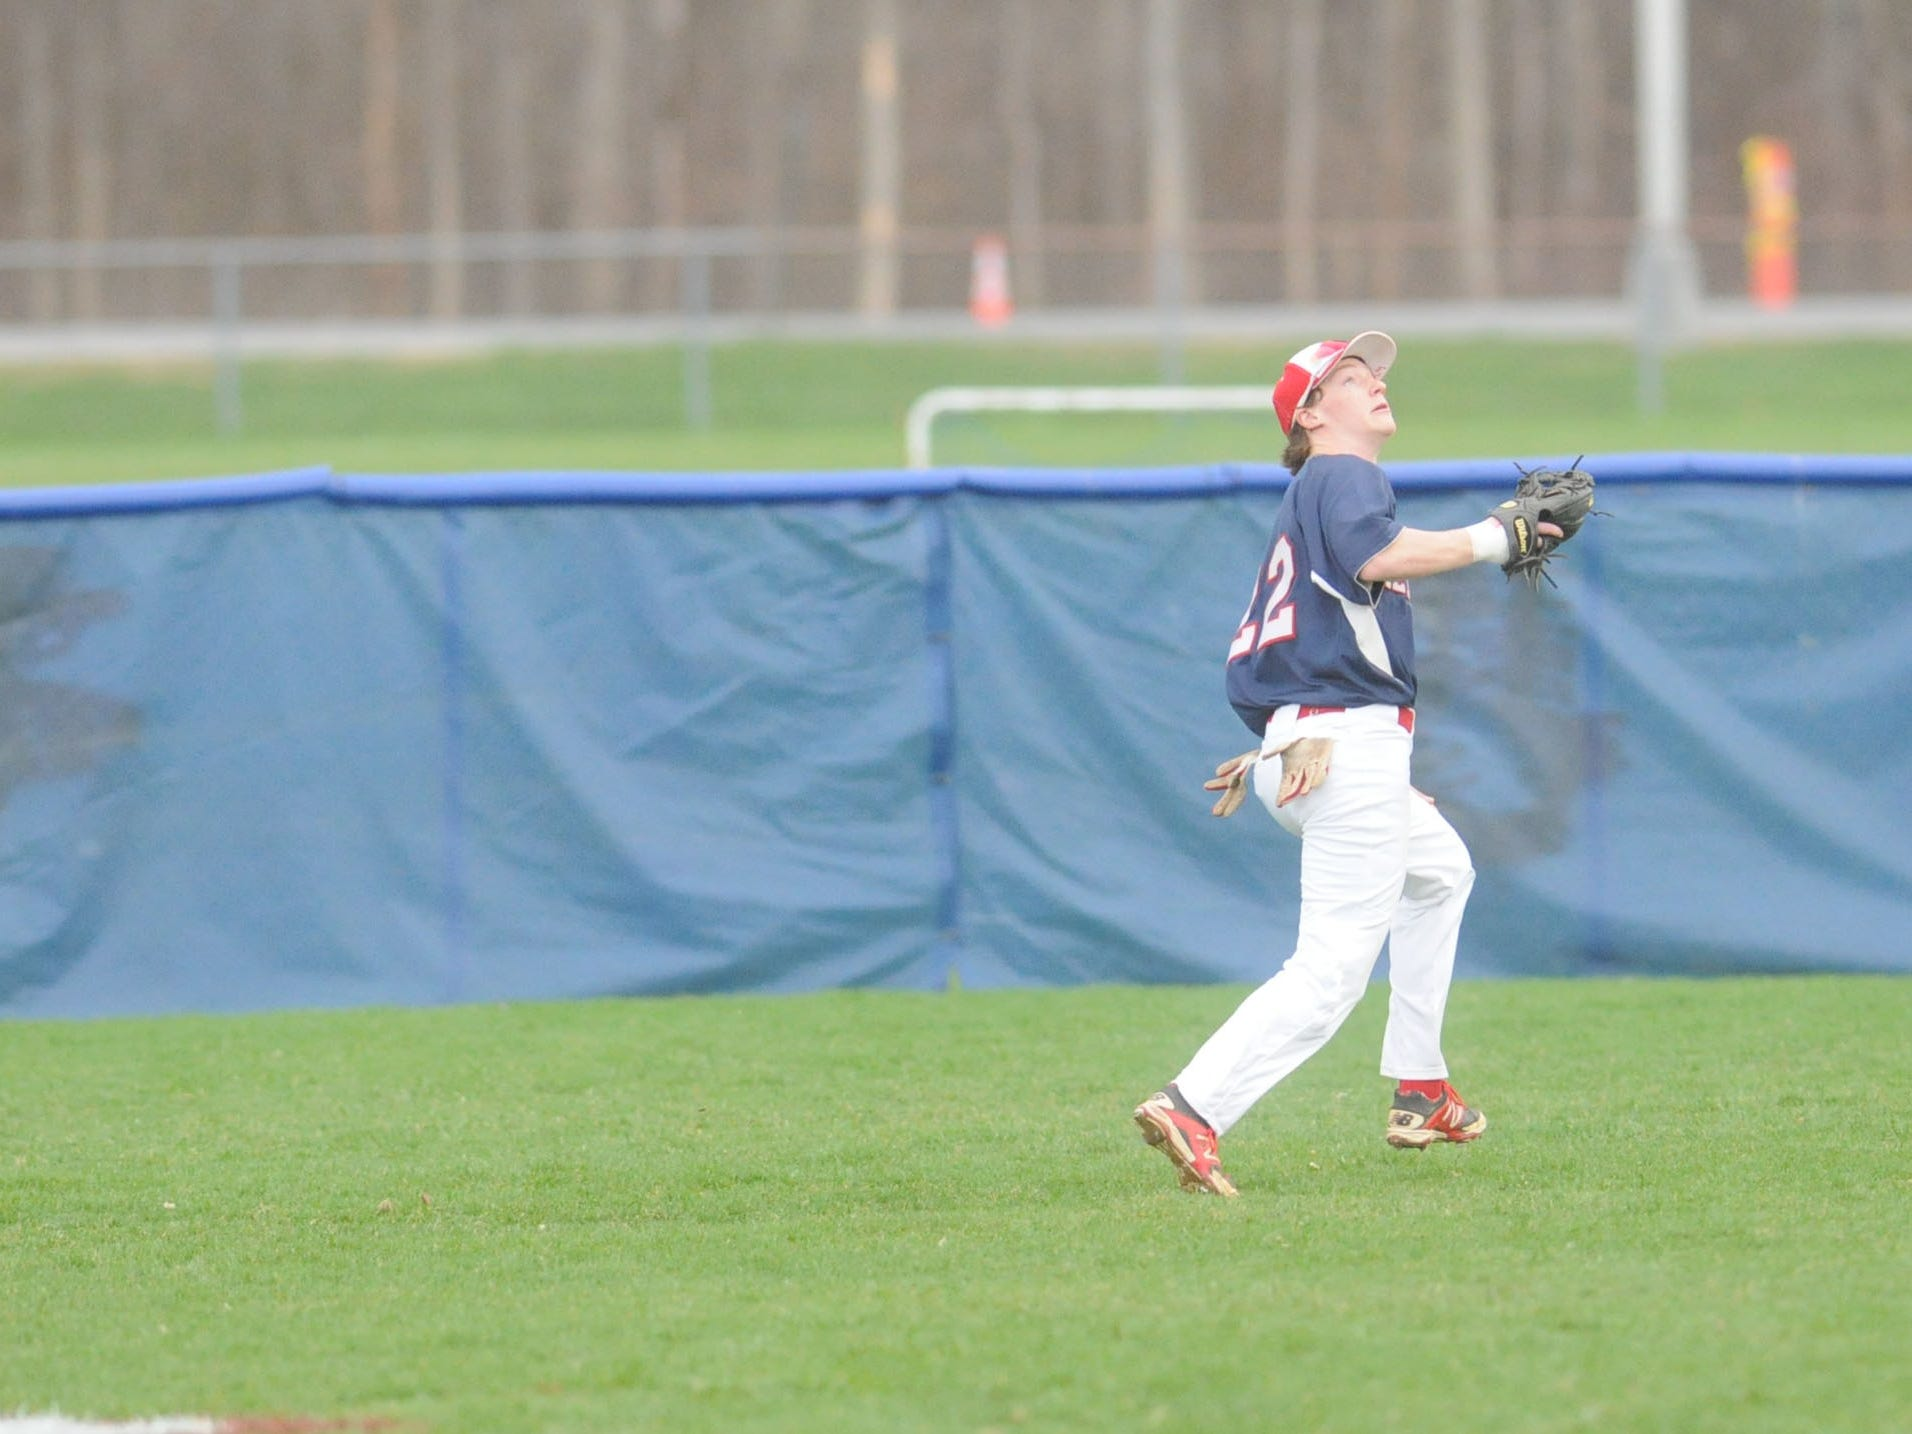 Ketcham's Nicholas Shepheard goes to make a catch in centerfield in Friday's game against Arlington.